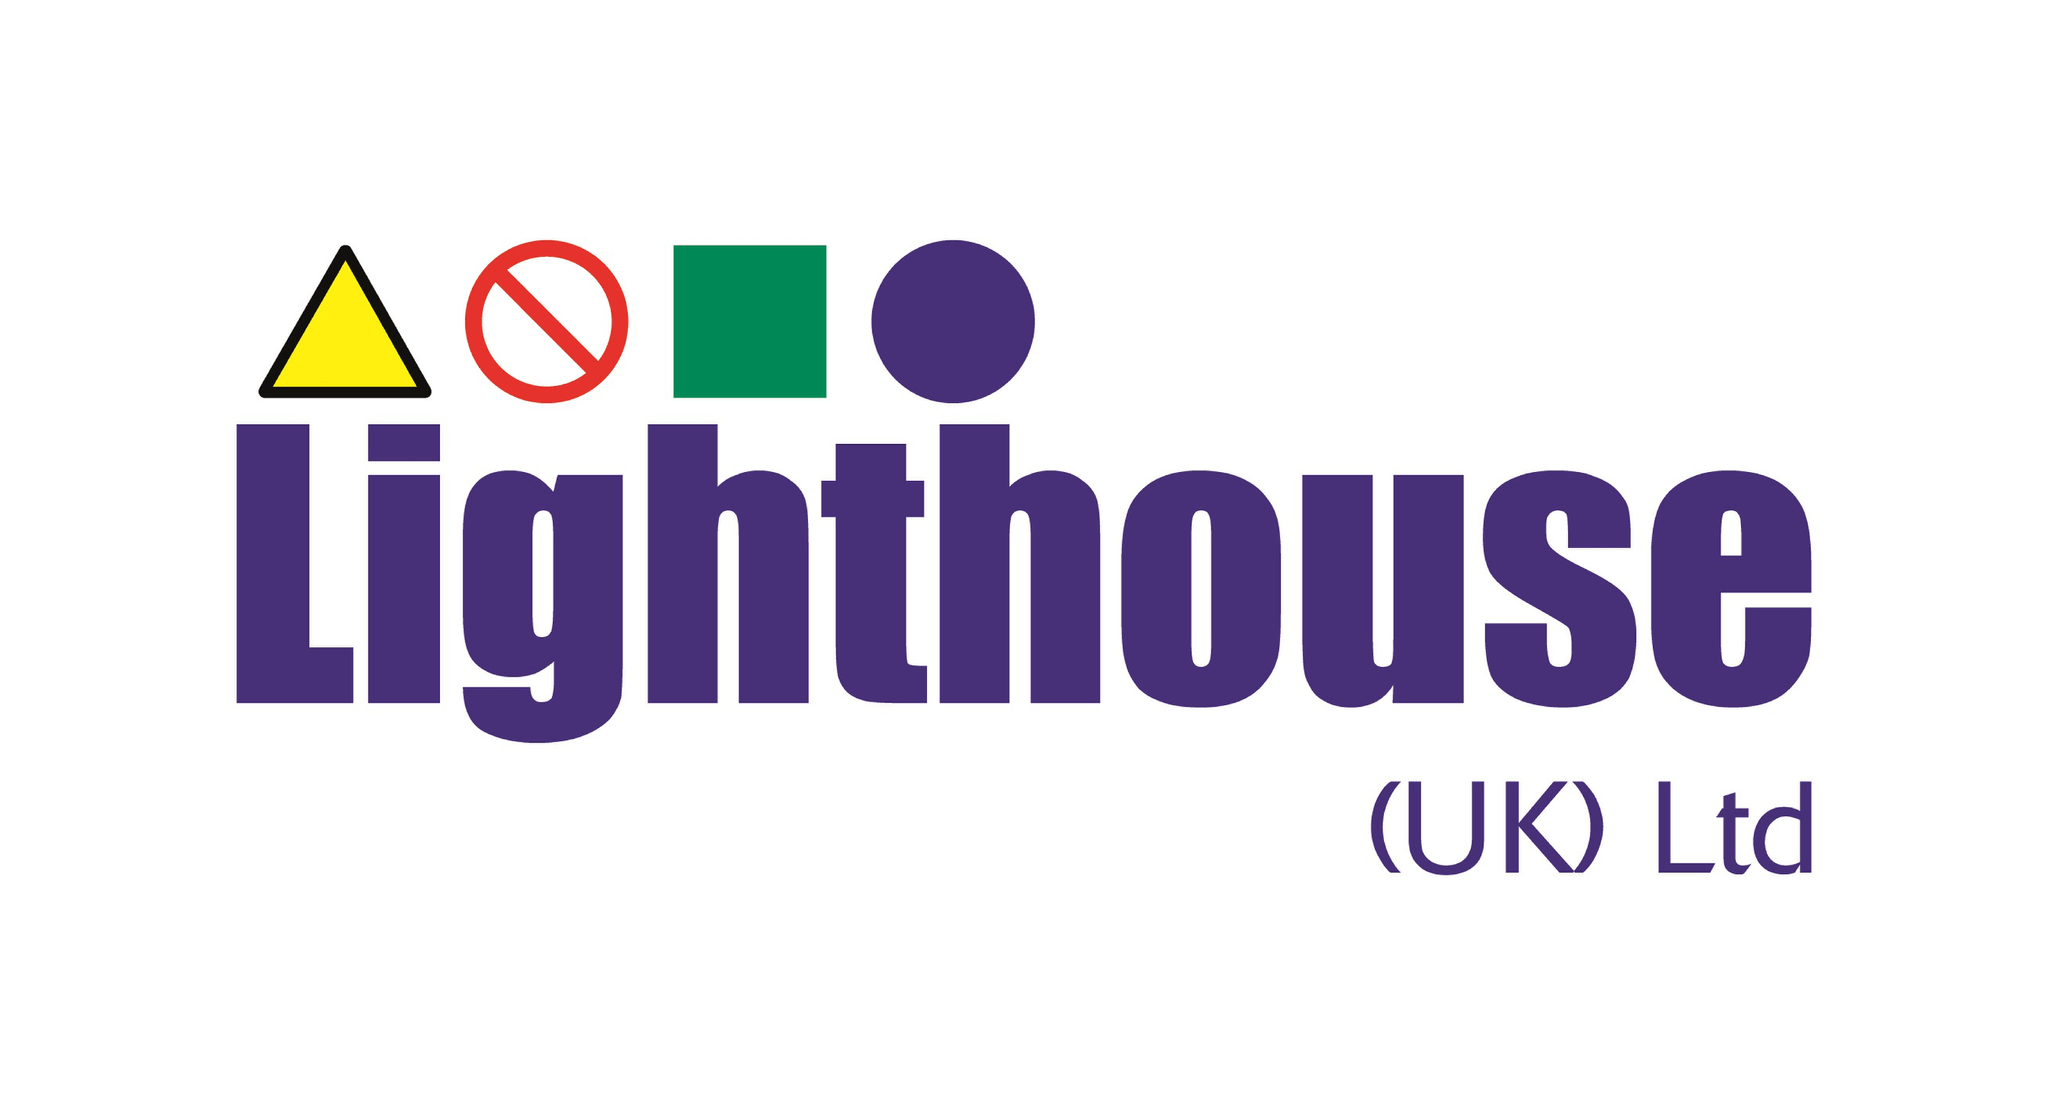 Lighthouse (UK) Ltd